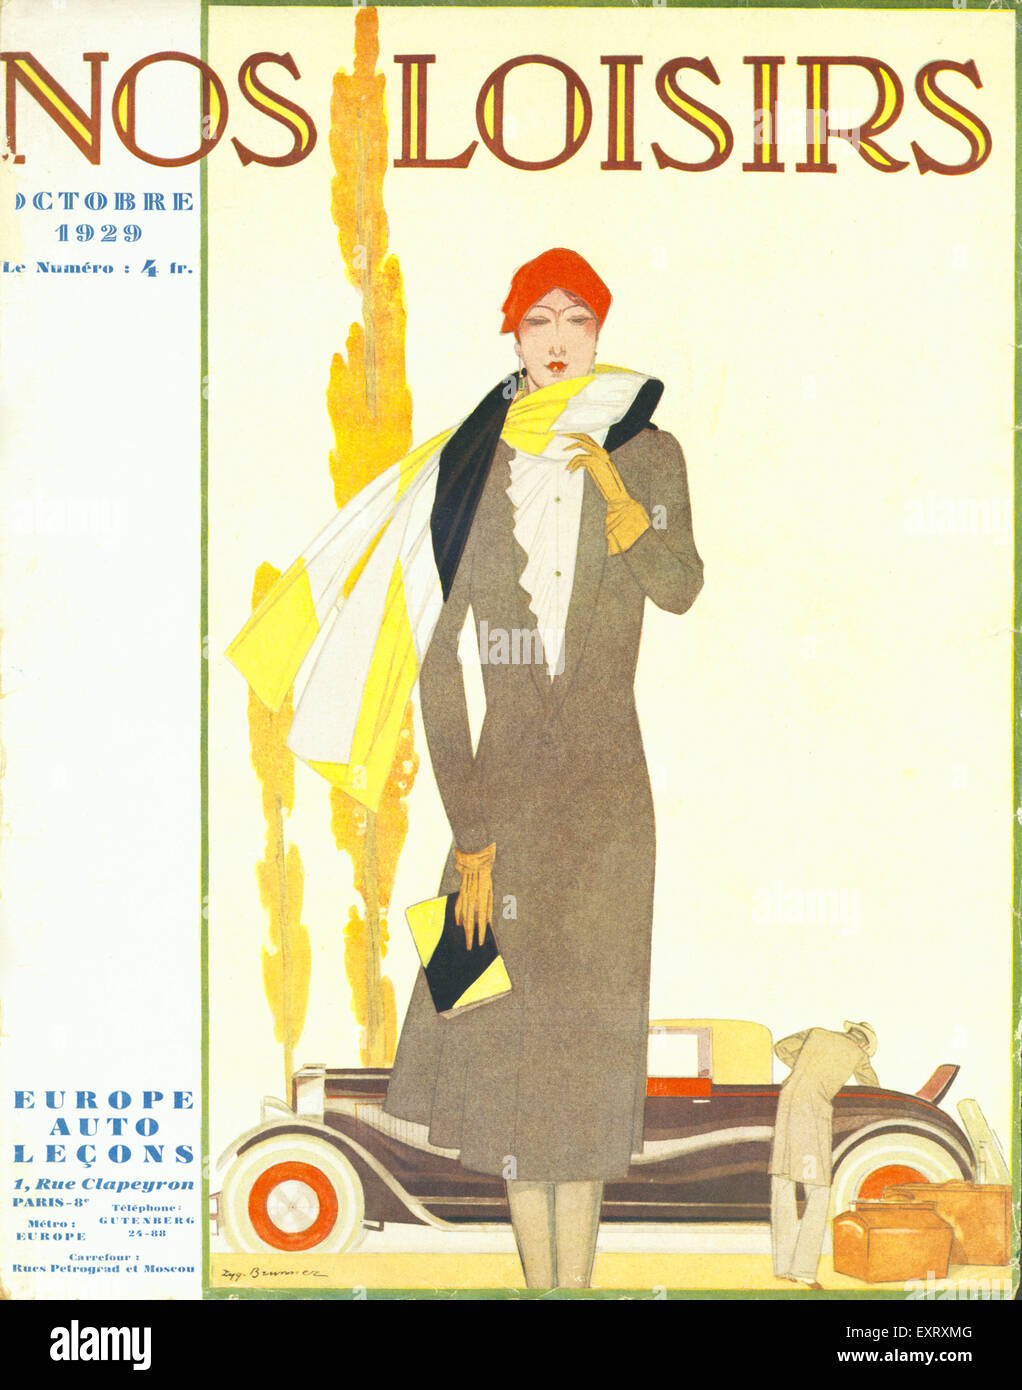 1920s France Nos Loisirs Magazine Cover - Stock Image